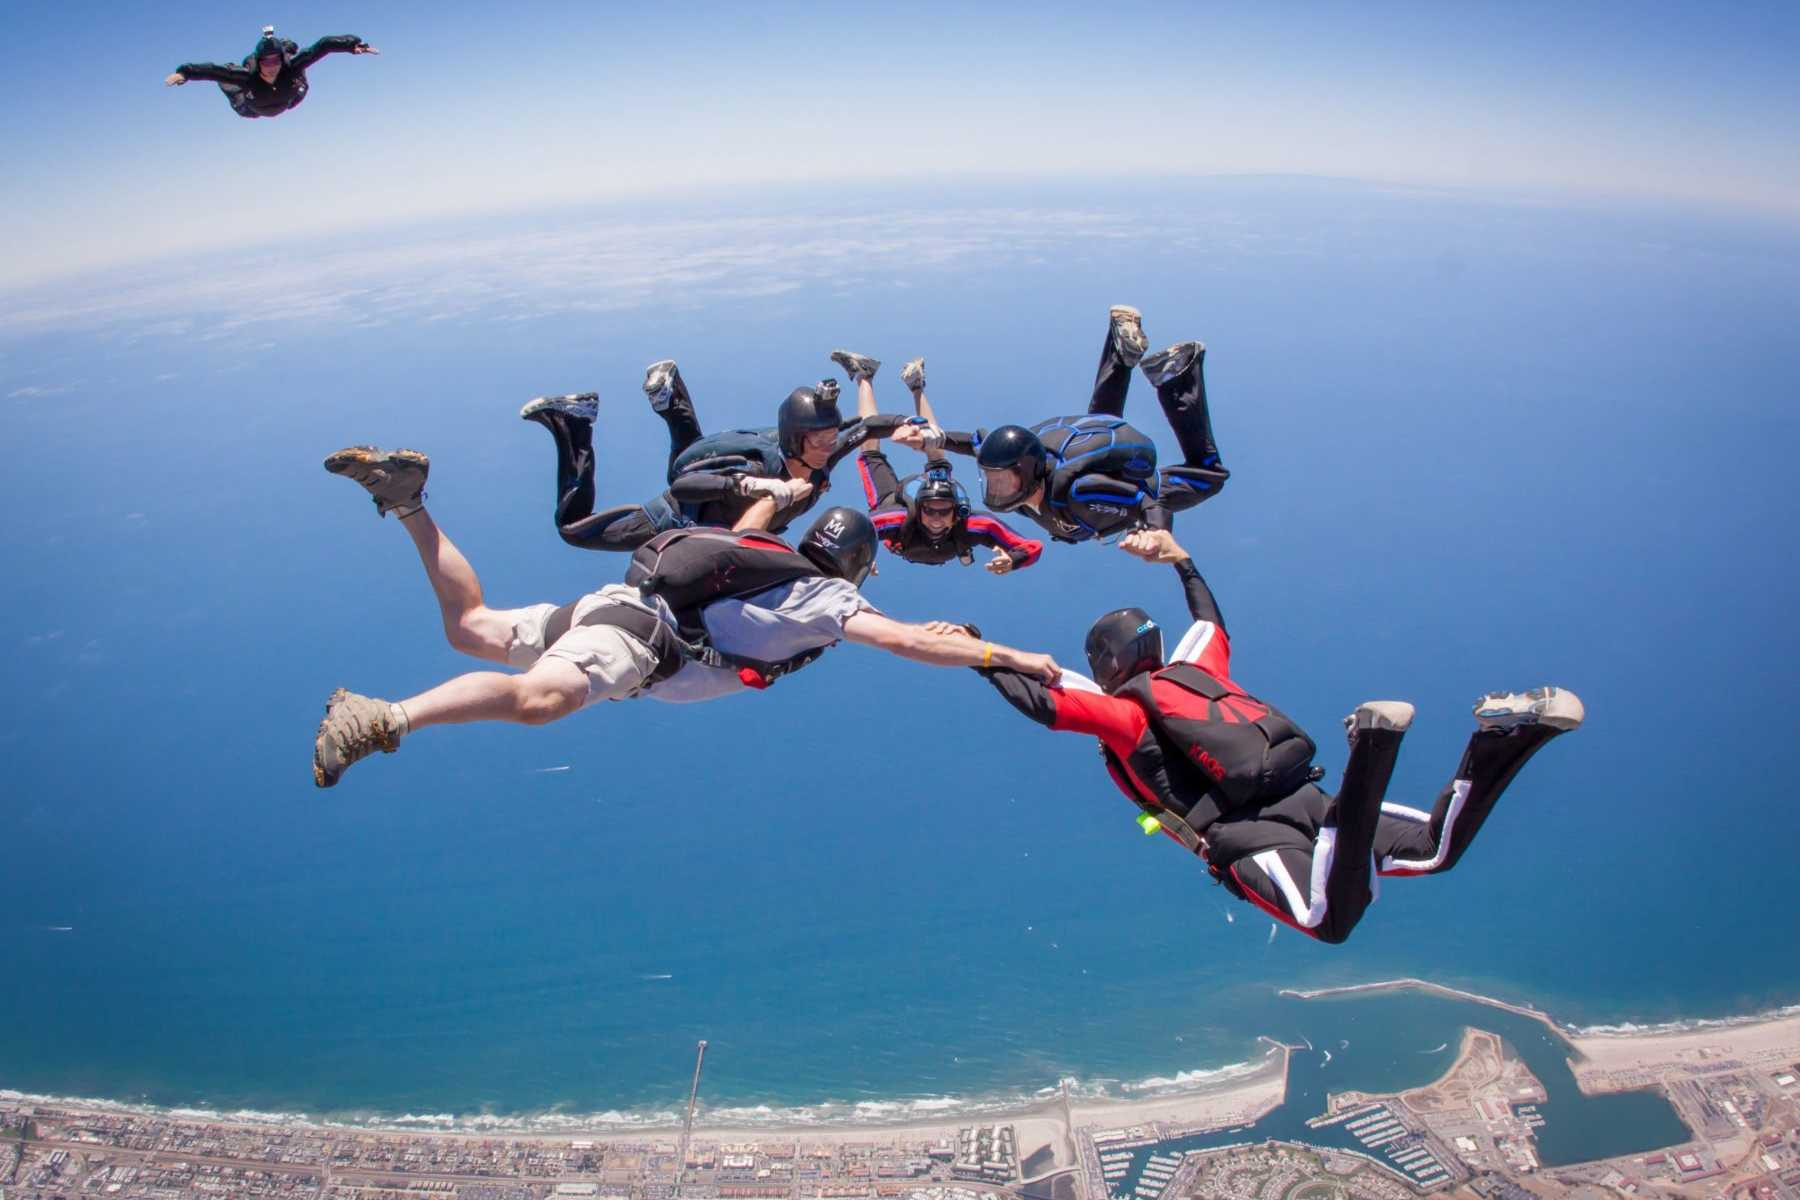 Coastal Skydiving